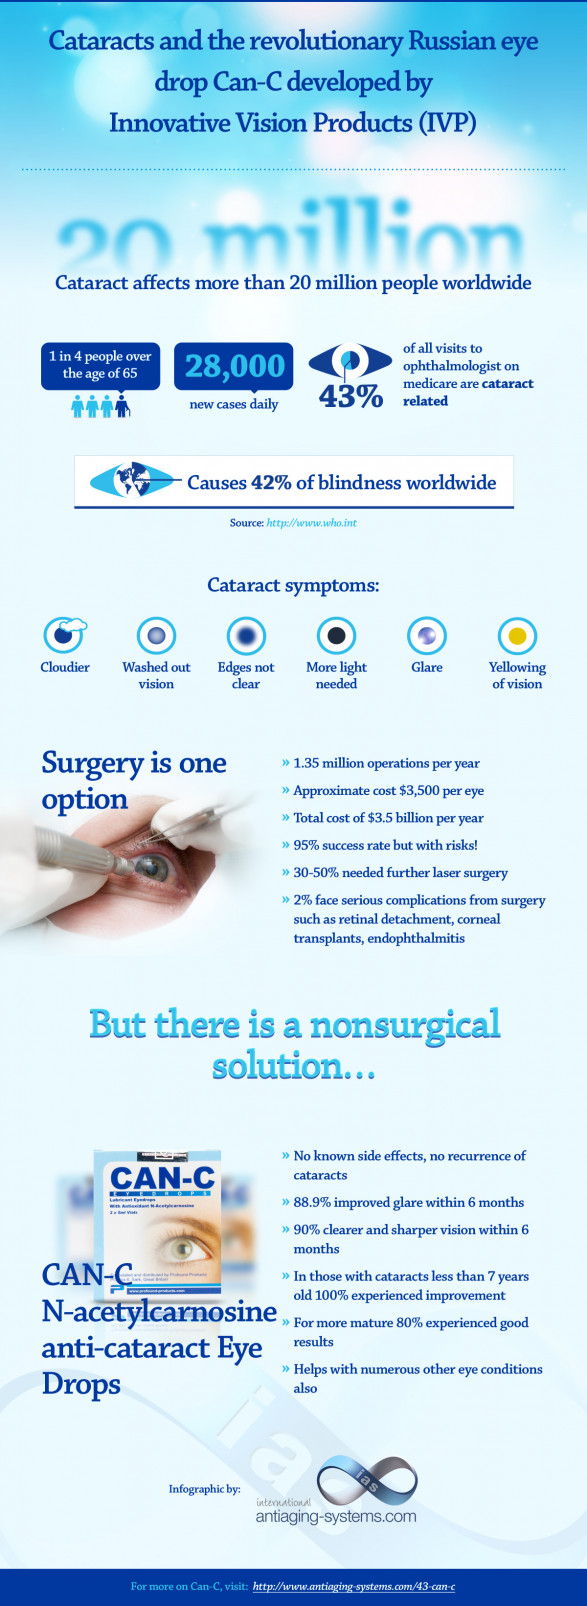 Cataracts and Can-C